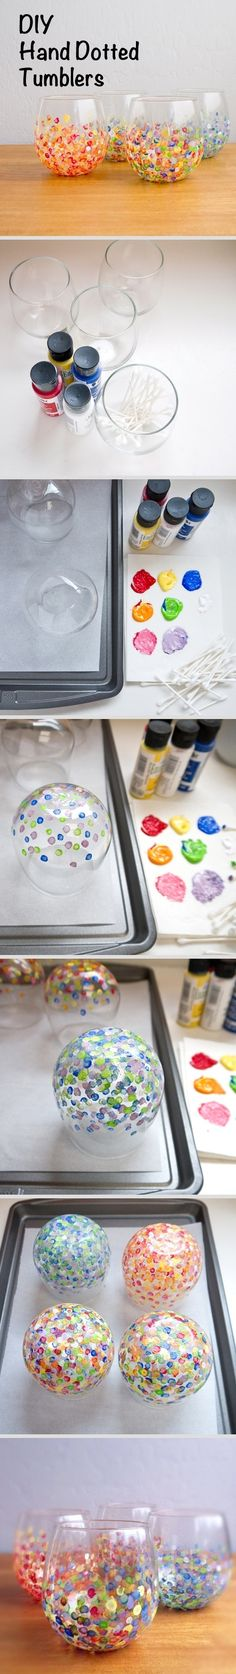 Let the finished dotted tumblers dry for an hour, and then flip them over on the sheet pan. Place in a cold oven and bake at 350°F for 30 minutes to set the paint. Turn off the heat and allow the glasses to cool in the oven for an hour before handling.